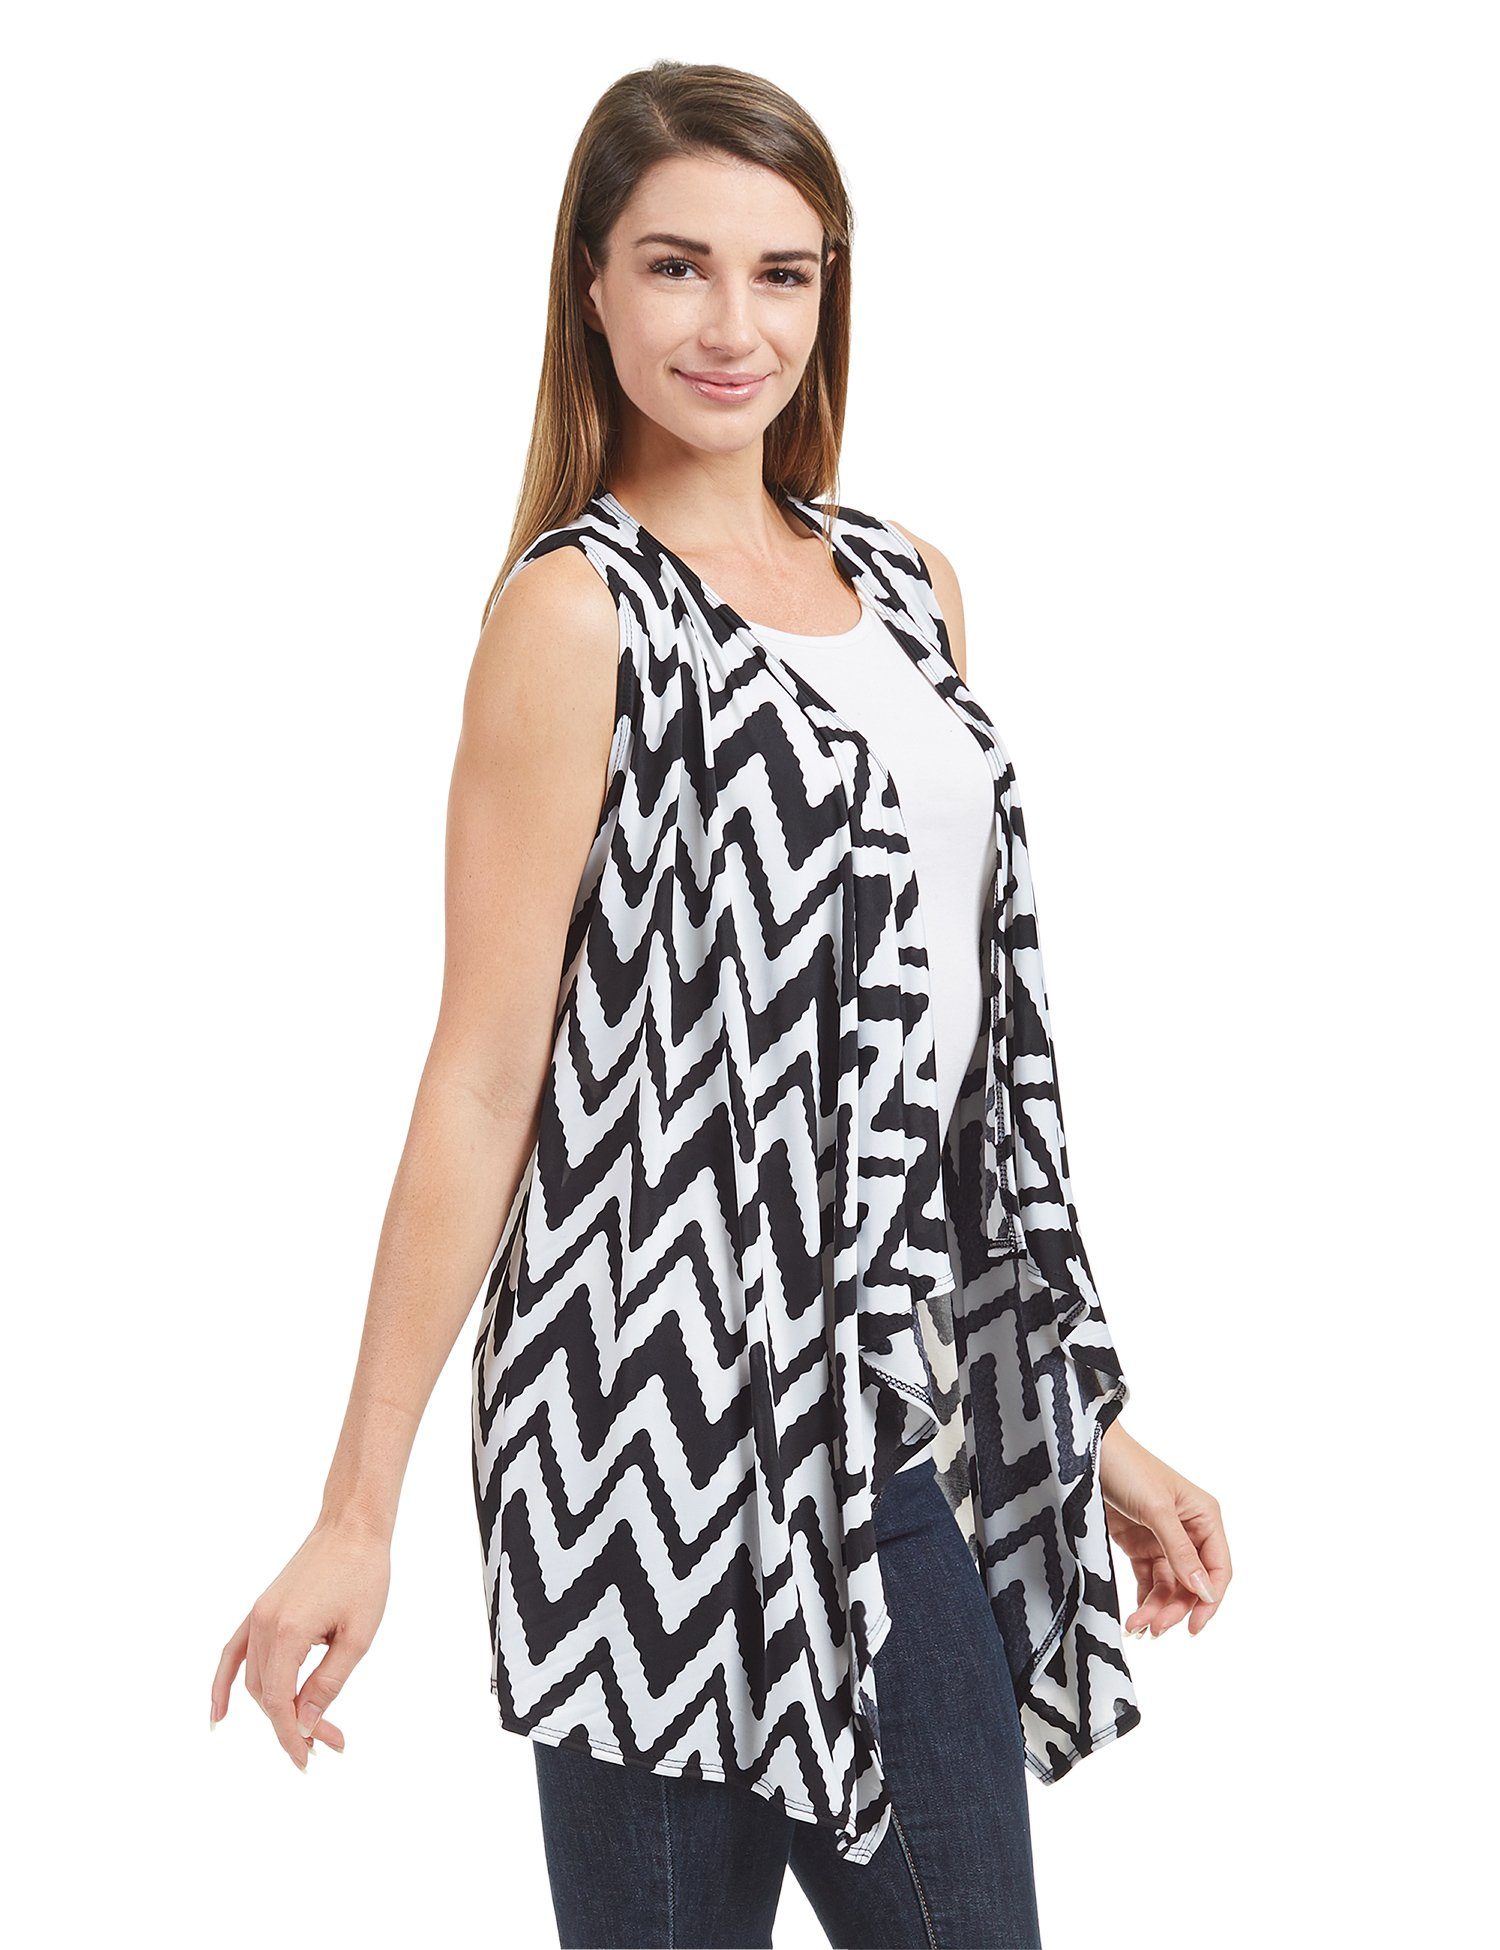 Lock and Love WSK1350 Womens Lightweight Print Draped Sleeveless Cardigan XXXL CHEV_Black by Lock and Love (Image #3)